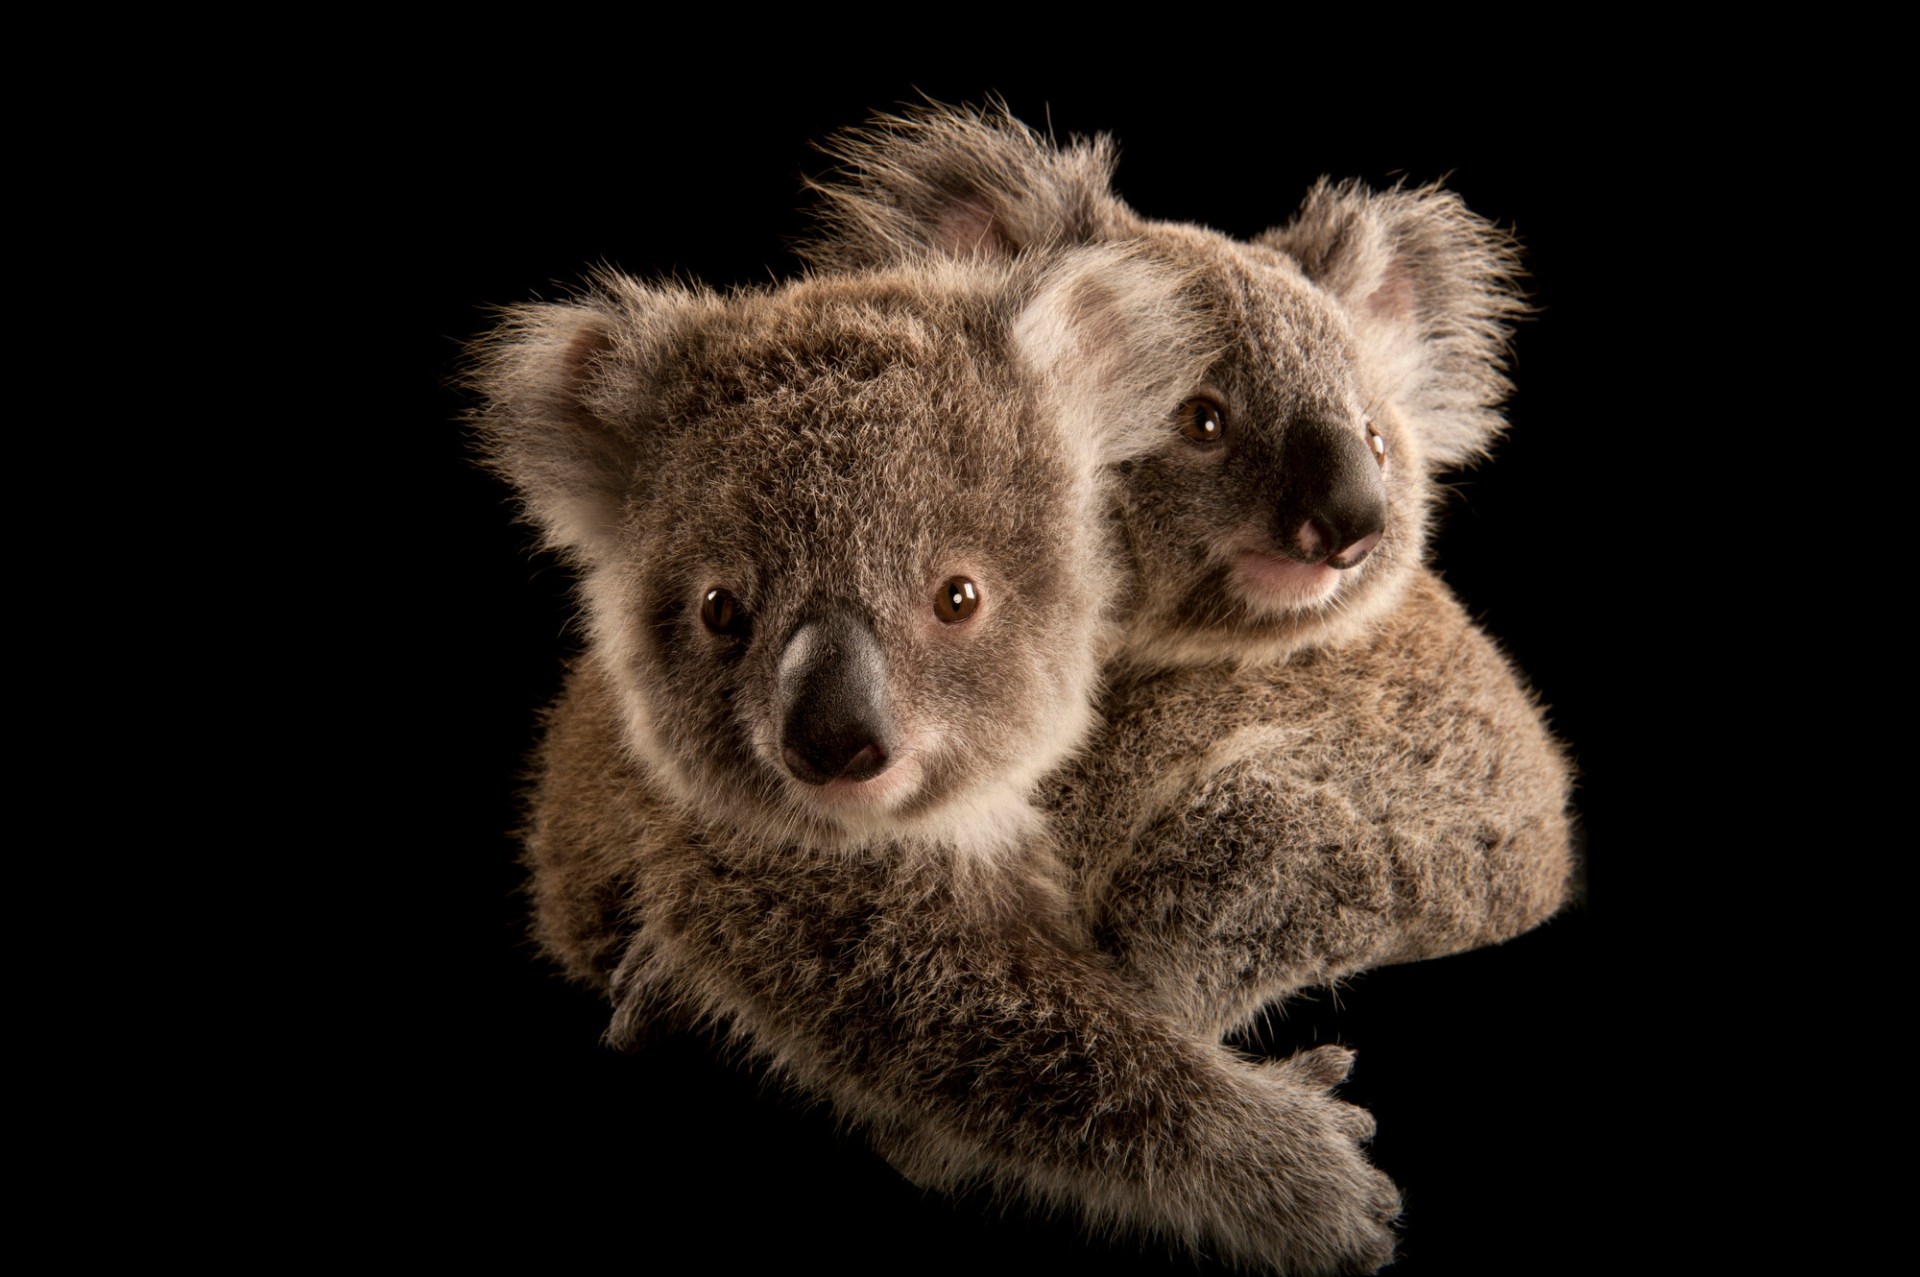 Two koala joeys cling to each other, waiting to be placed with human caregivers. Once they're old enough, they'll be released into the wild.